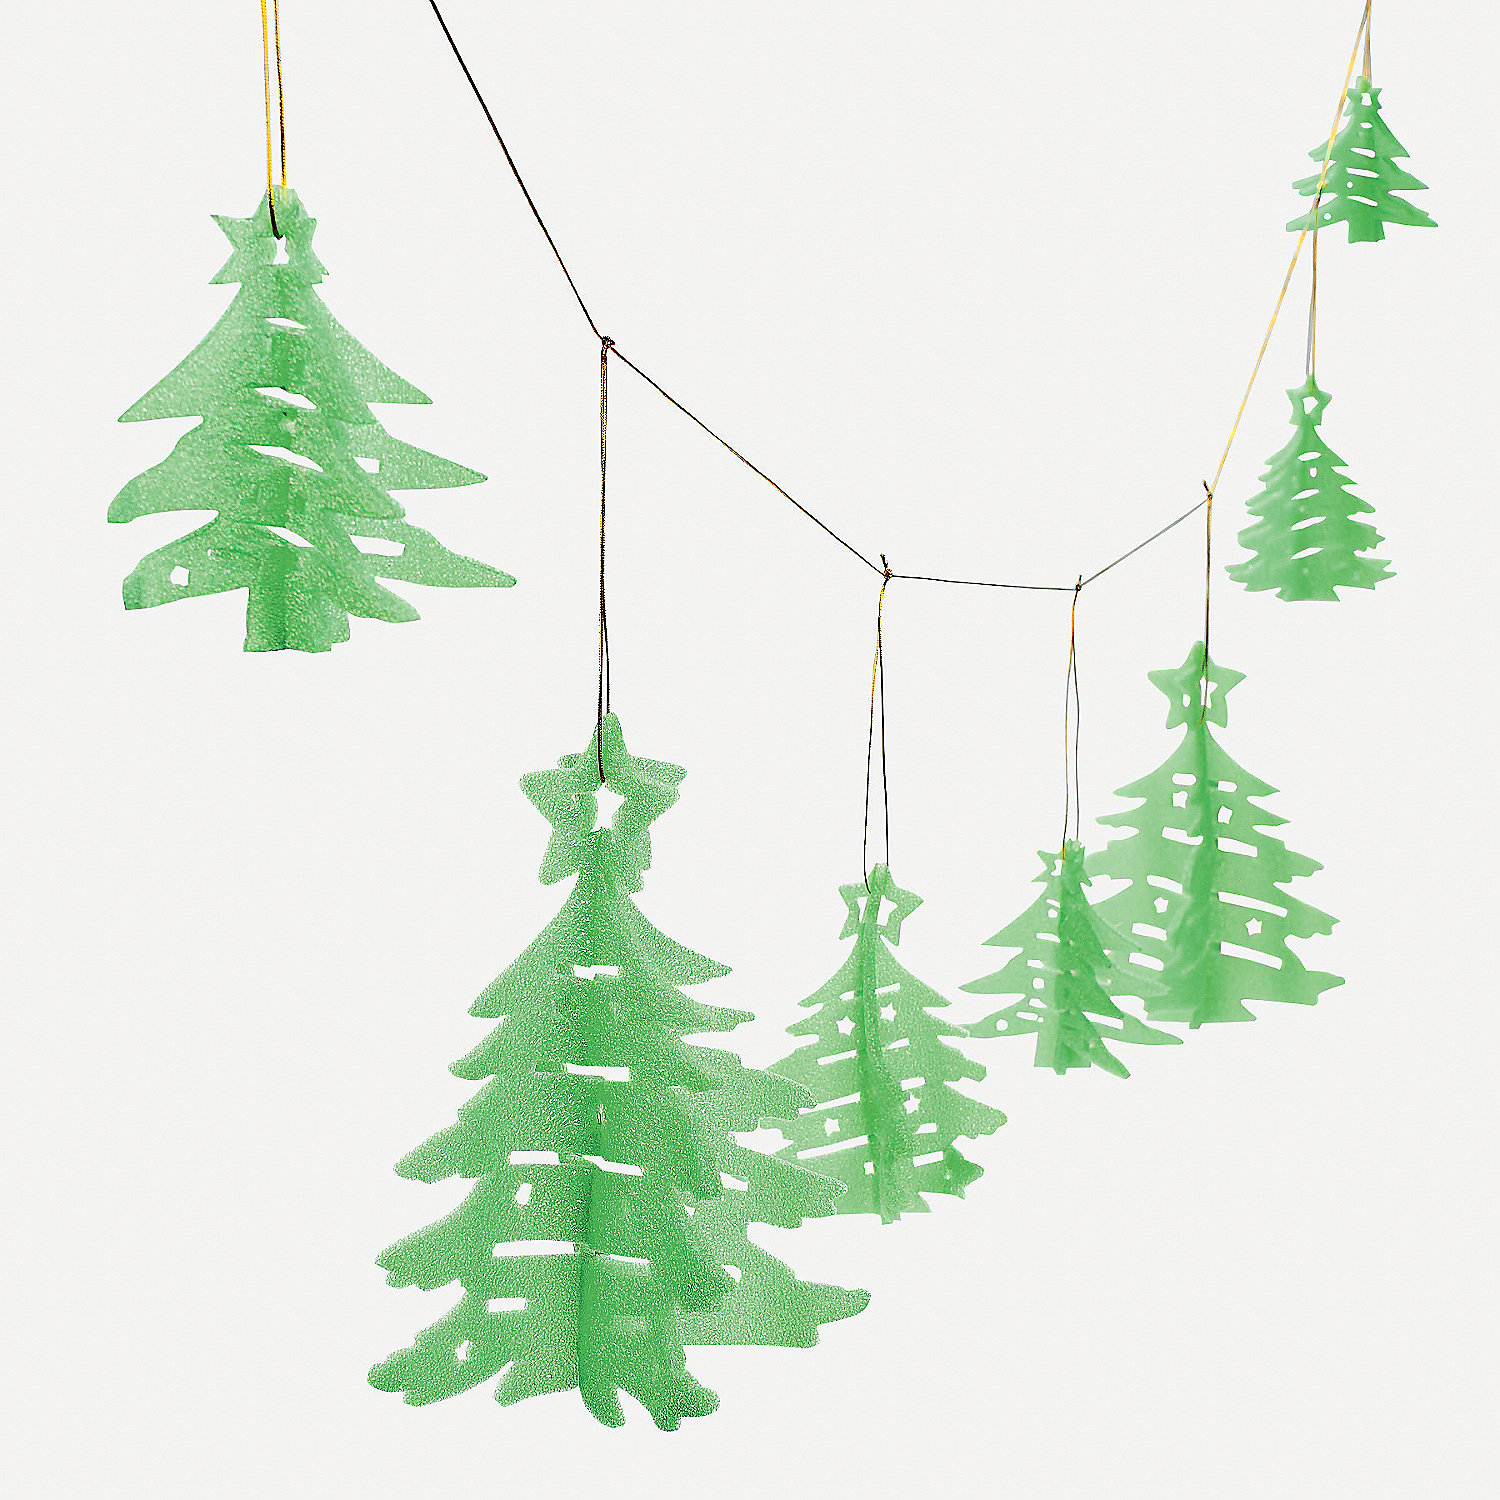 Christmas tree options trading strategy